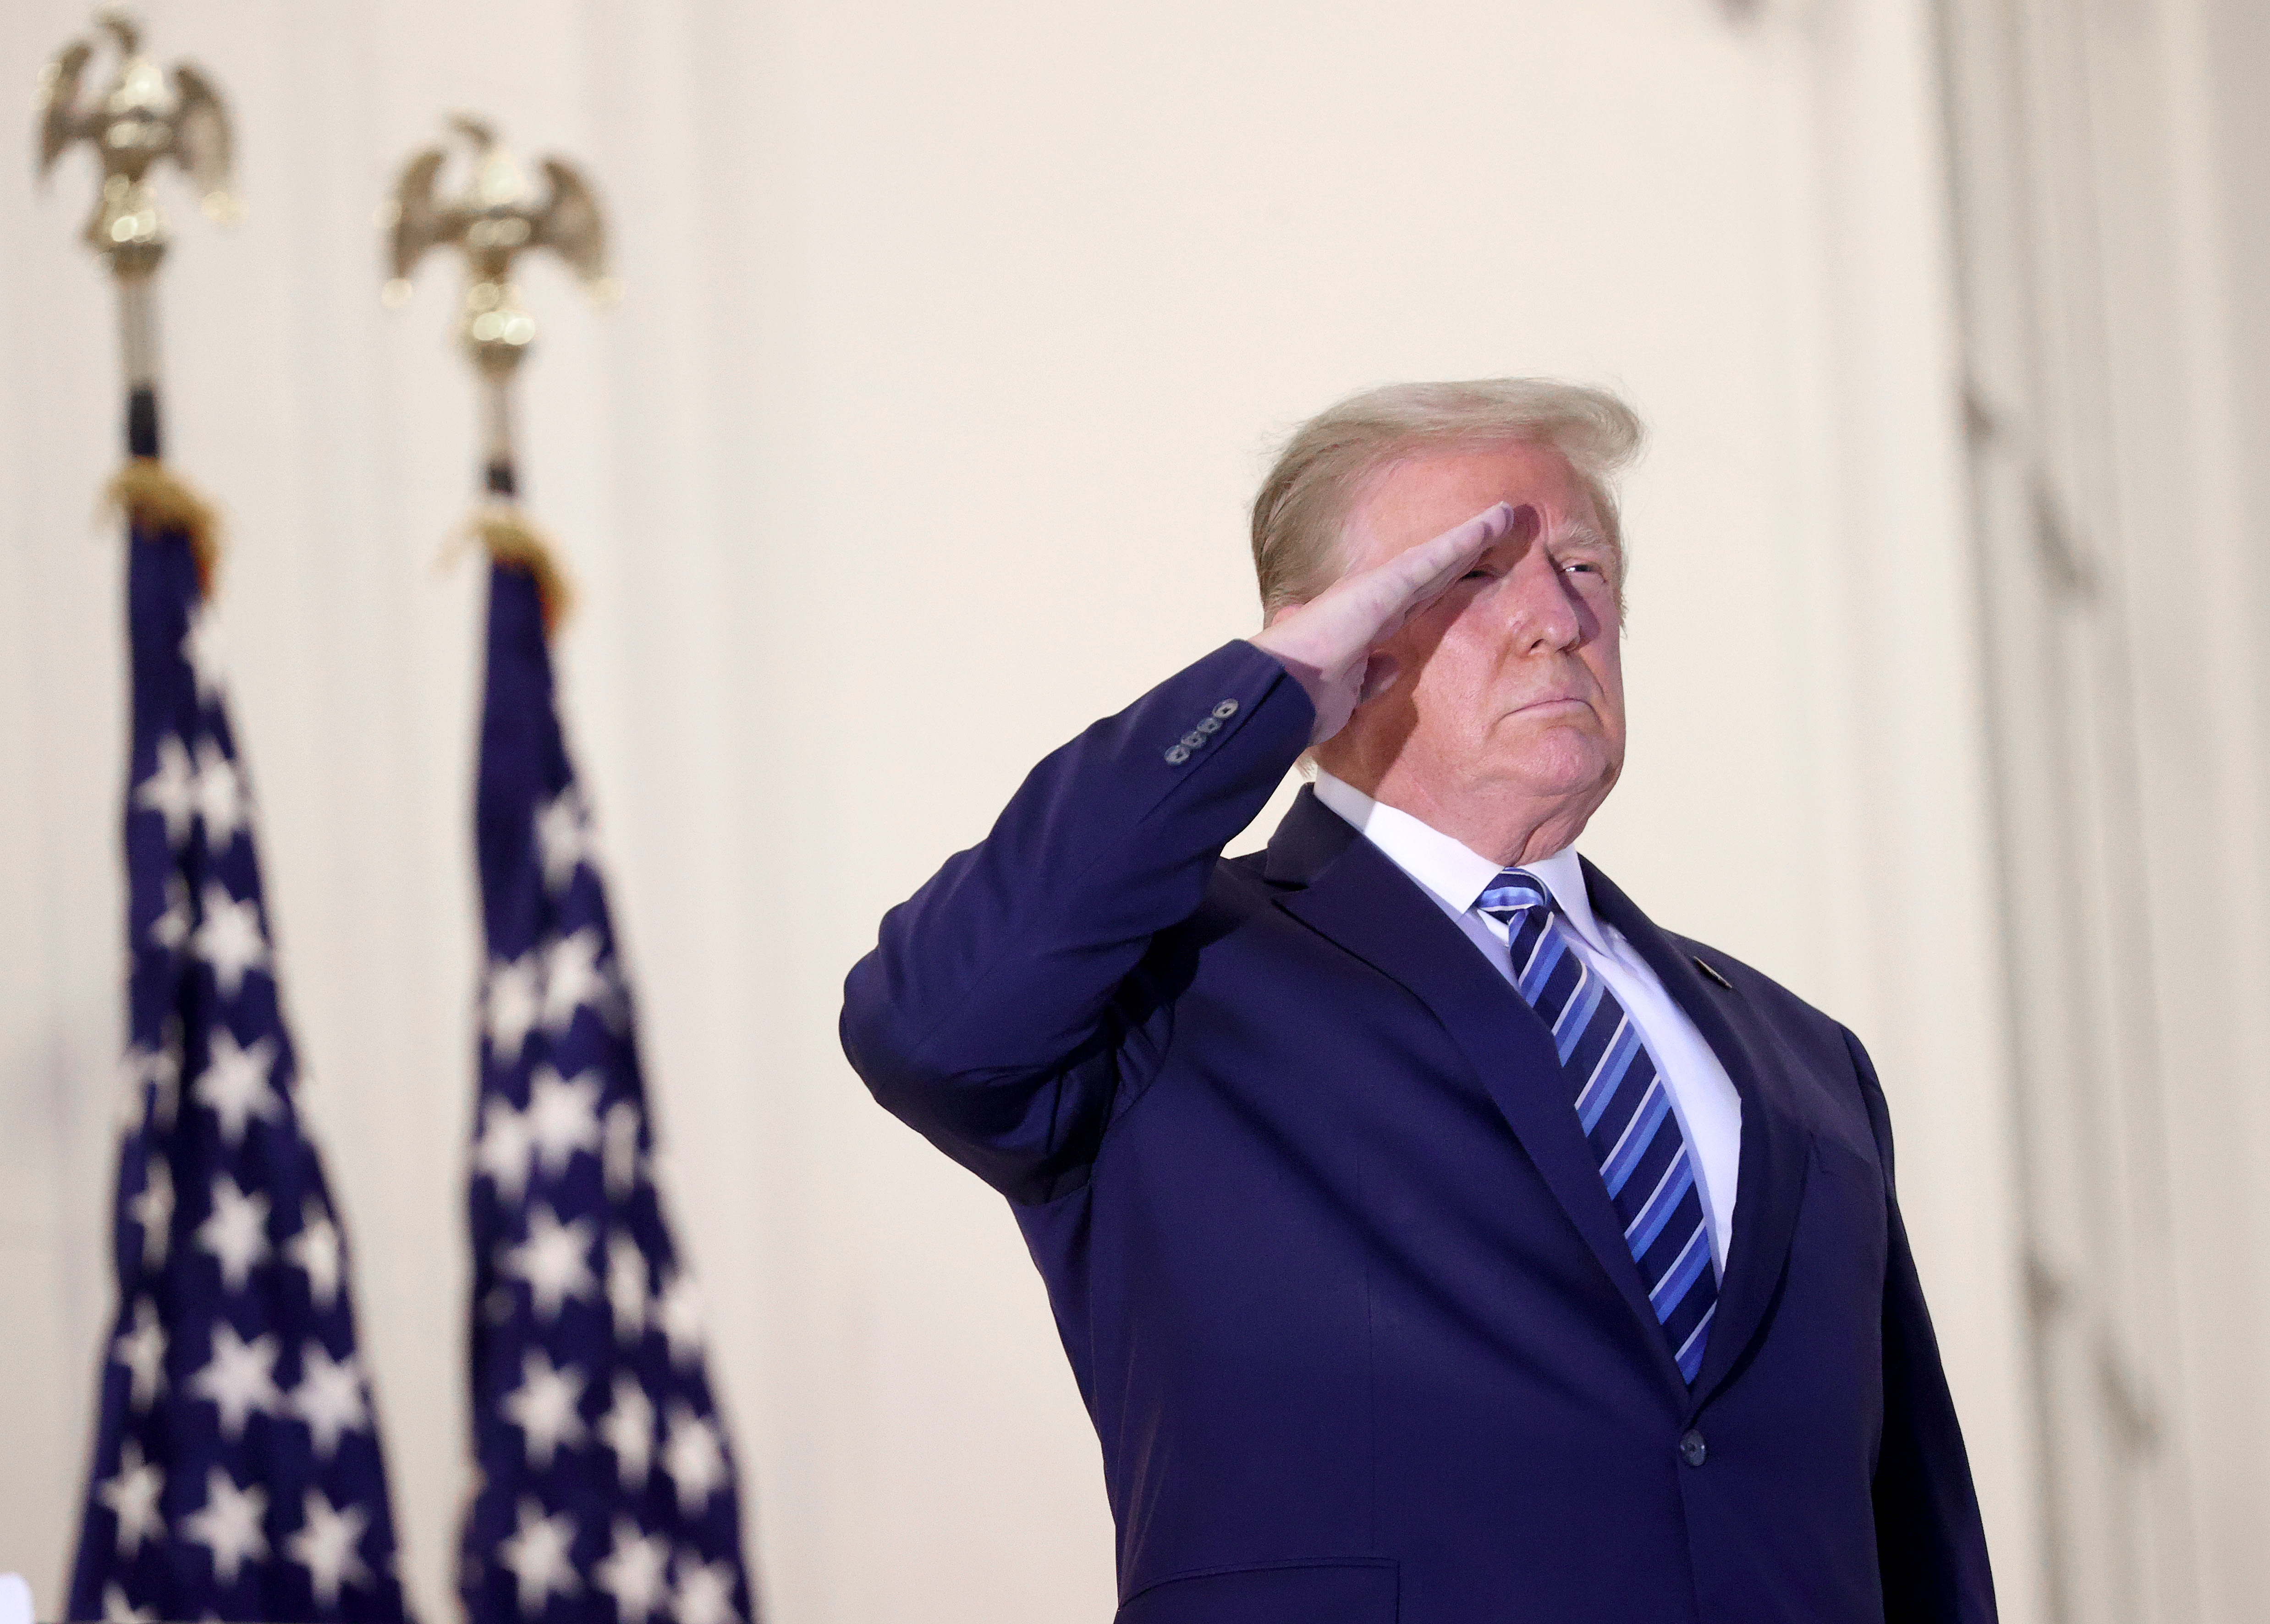 Wearing a navy suit and tie, Donald Trump salutes in front of a row of American flags outside the White House.